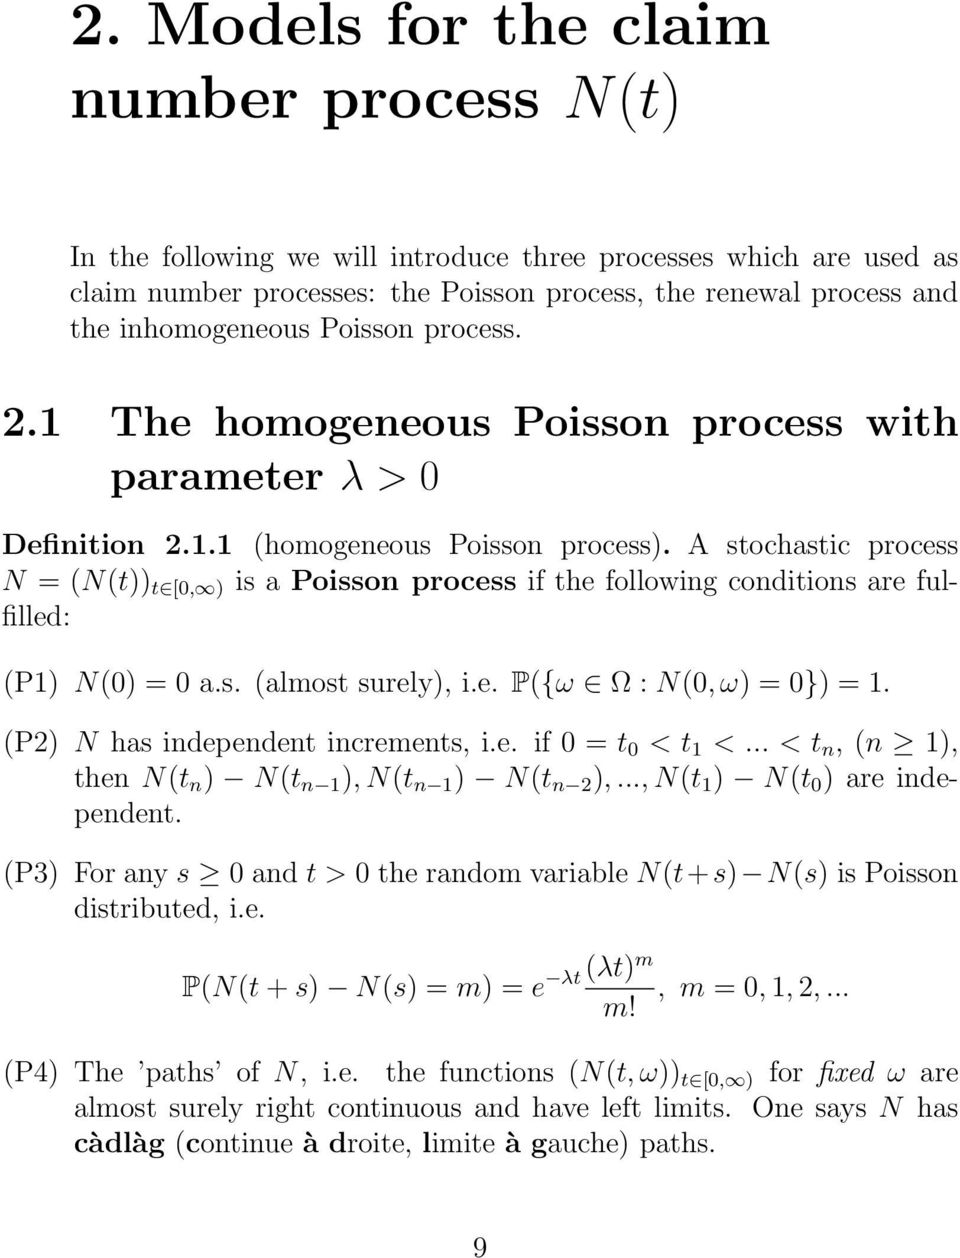 A stochastic process N (N(t)) t [, ) is a Poisson process if the following conditions are fulfilled: (P1) N() a.s. (almost surely), i.e. P({ω Ω : N(, ω) }) 1. (P2) N has independent increments, i.e. if t < t 1 <.